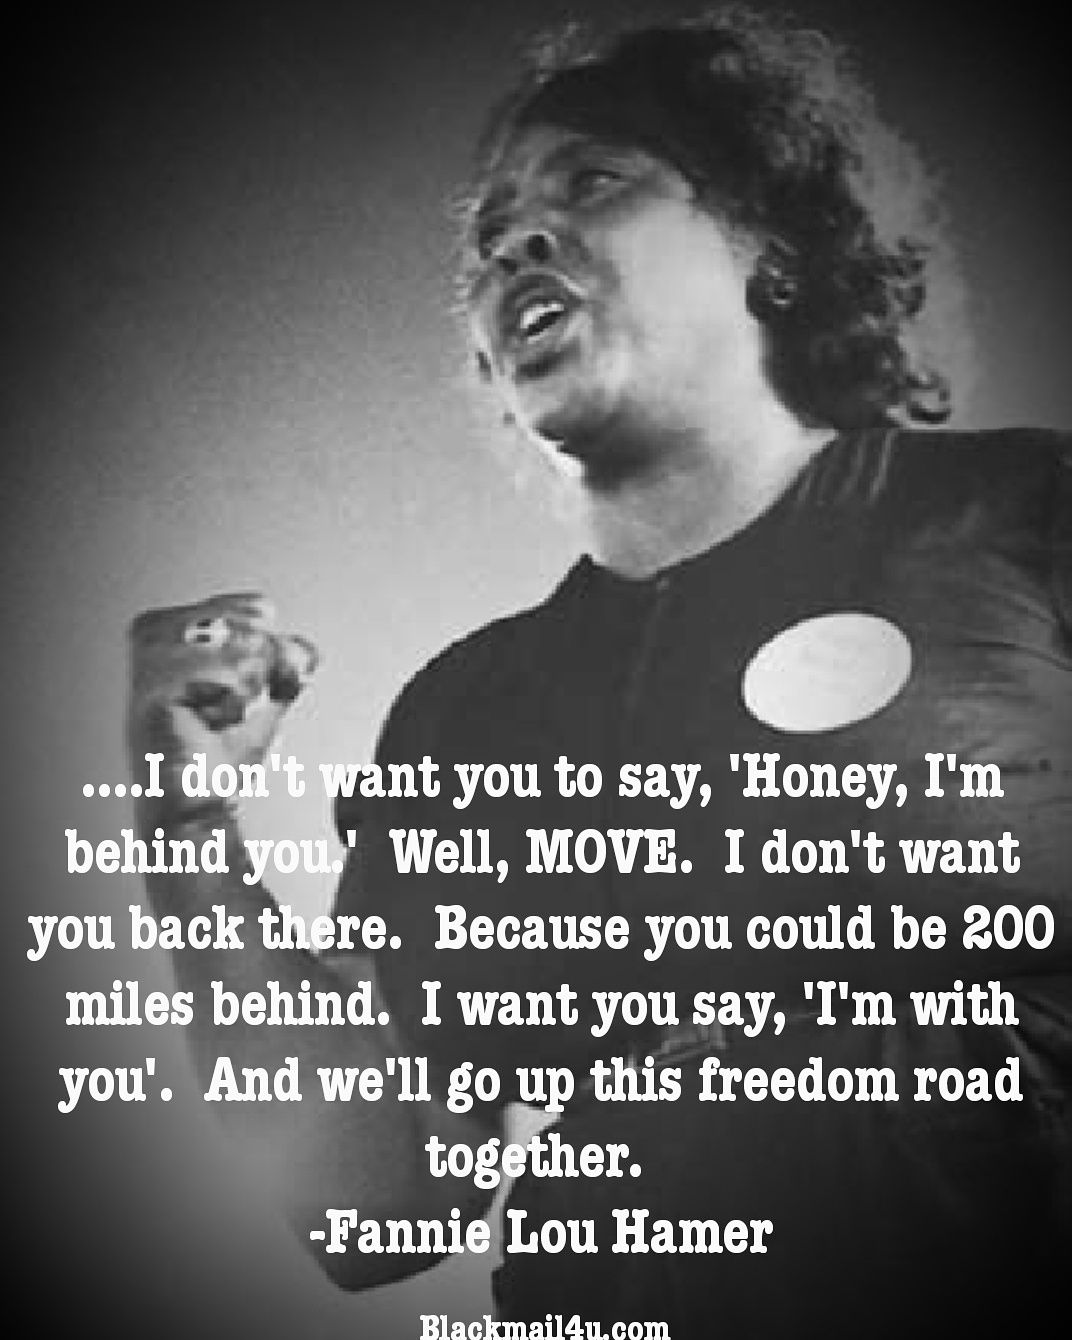 Delta sigma theta sorority inc soror fannie lou hamer quote